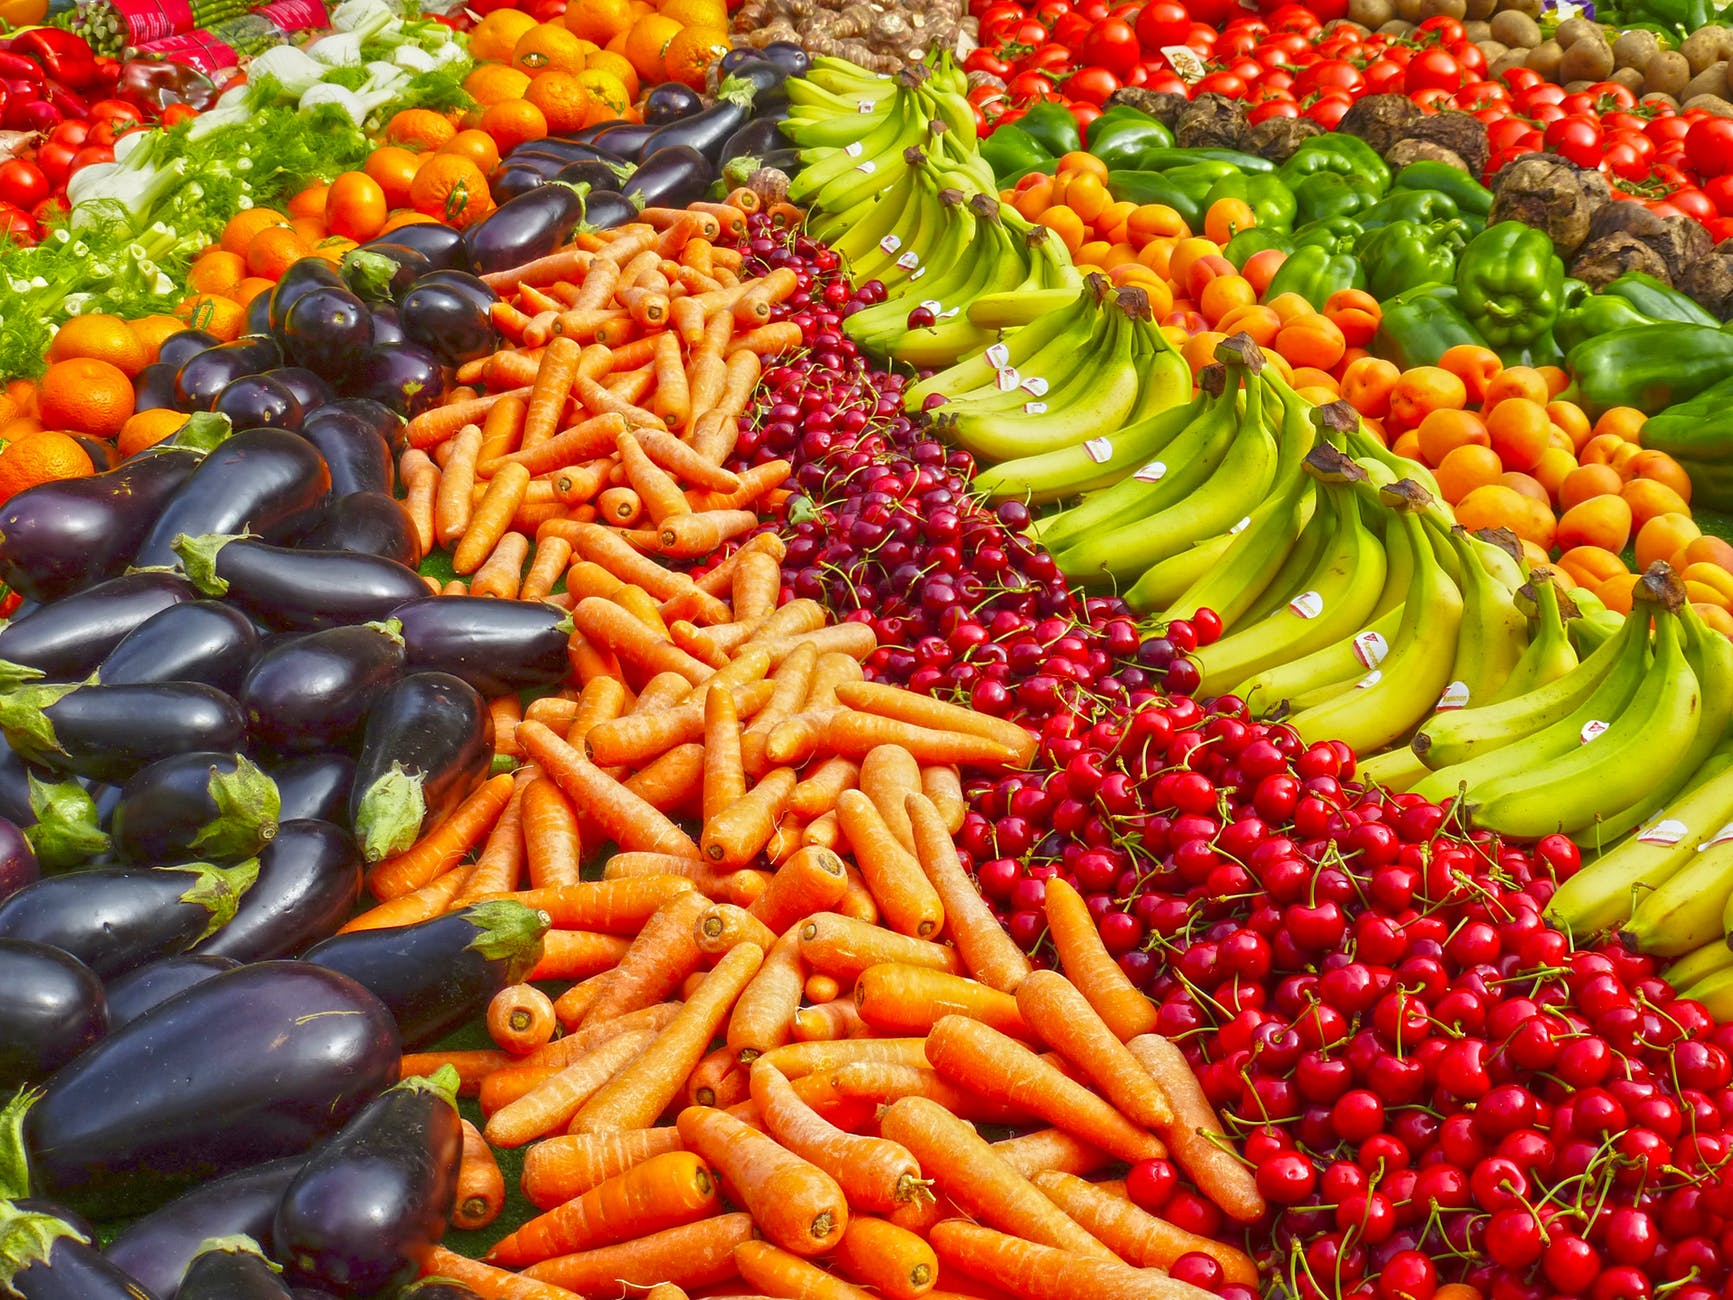 prostate health - fruits and veggies